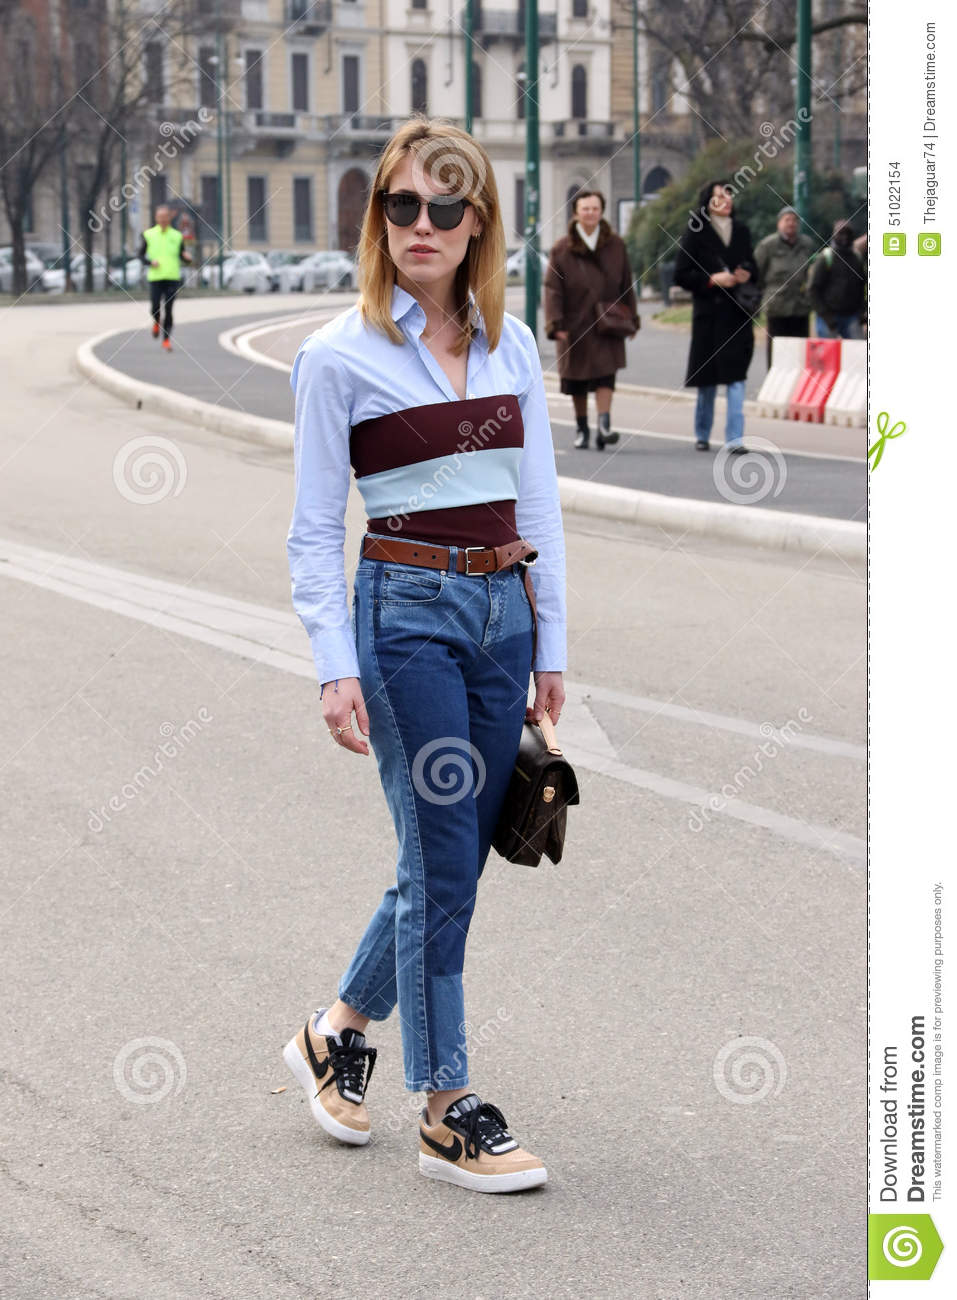 Annabell Rosendahl Milano Milan Fashion Week Streetstyle Autumn Winter 2015 2016 Editorial Stock